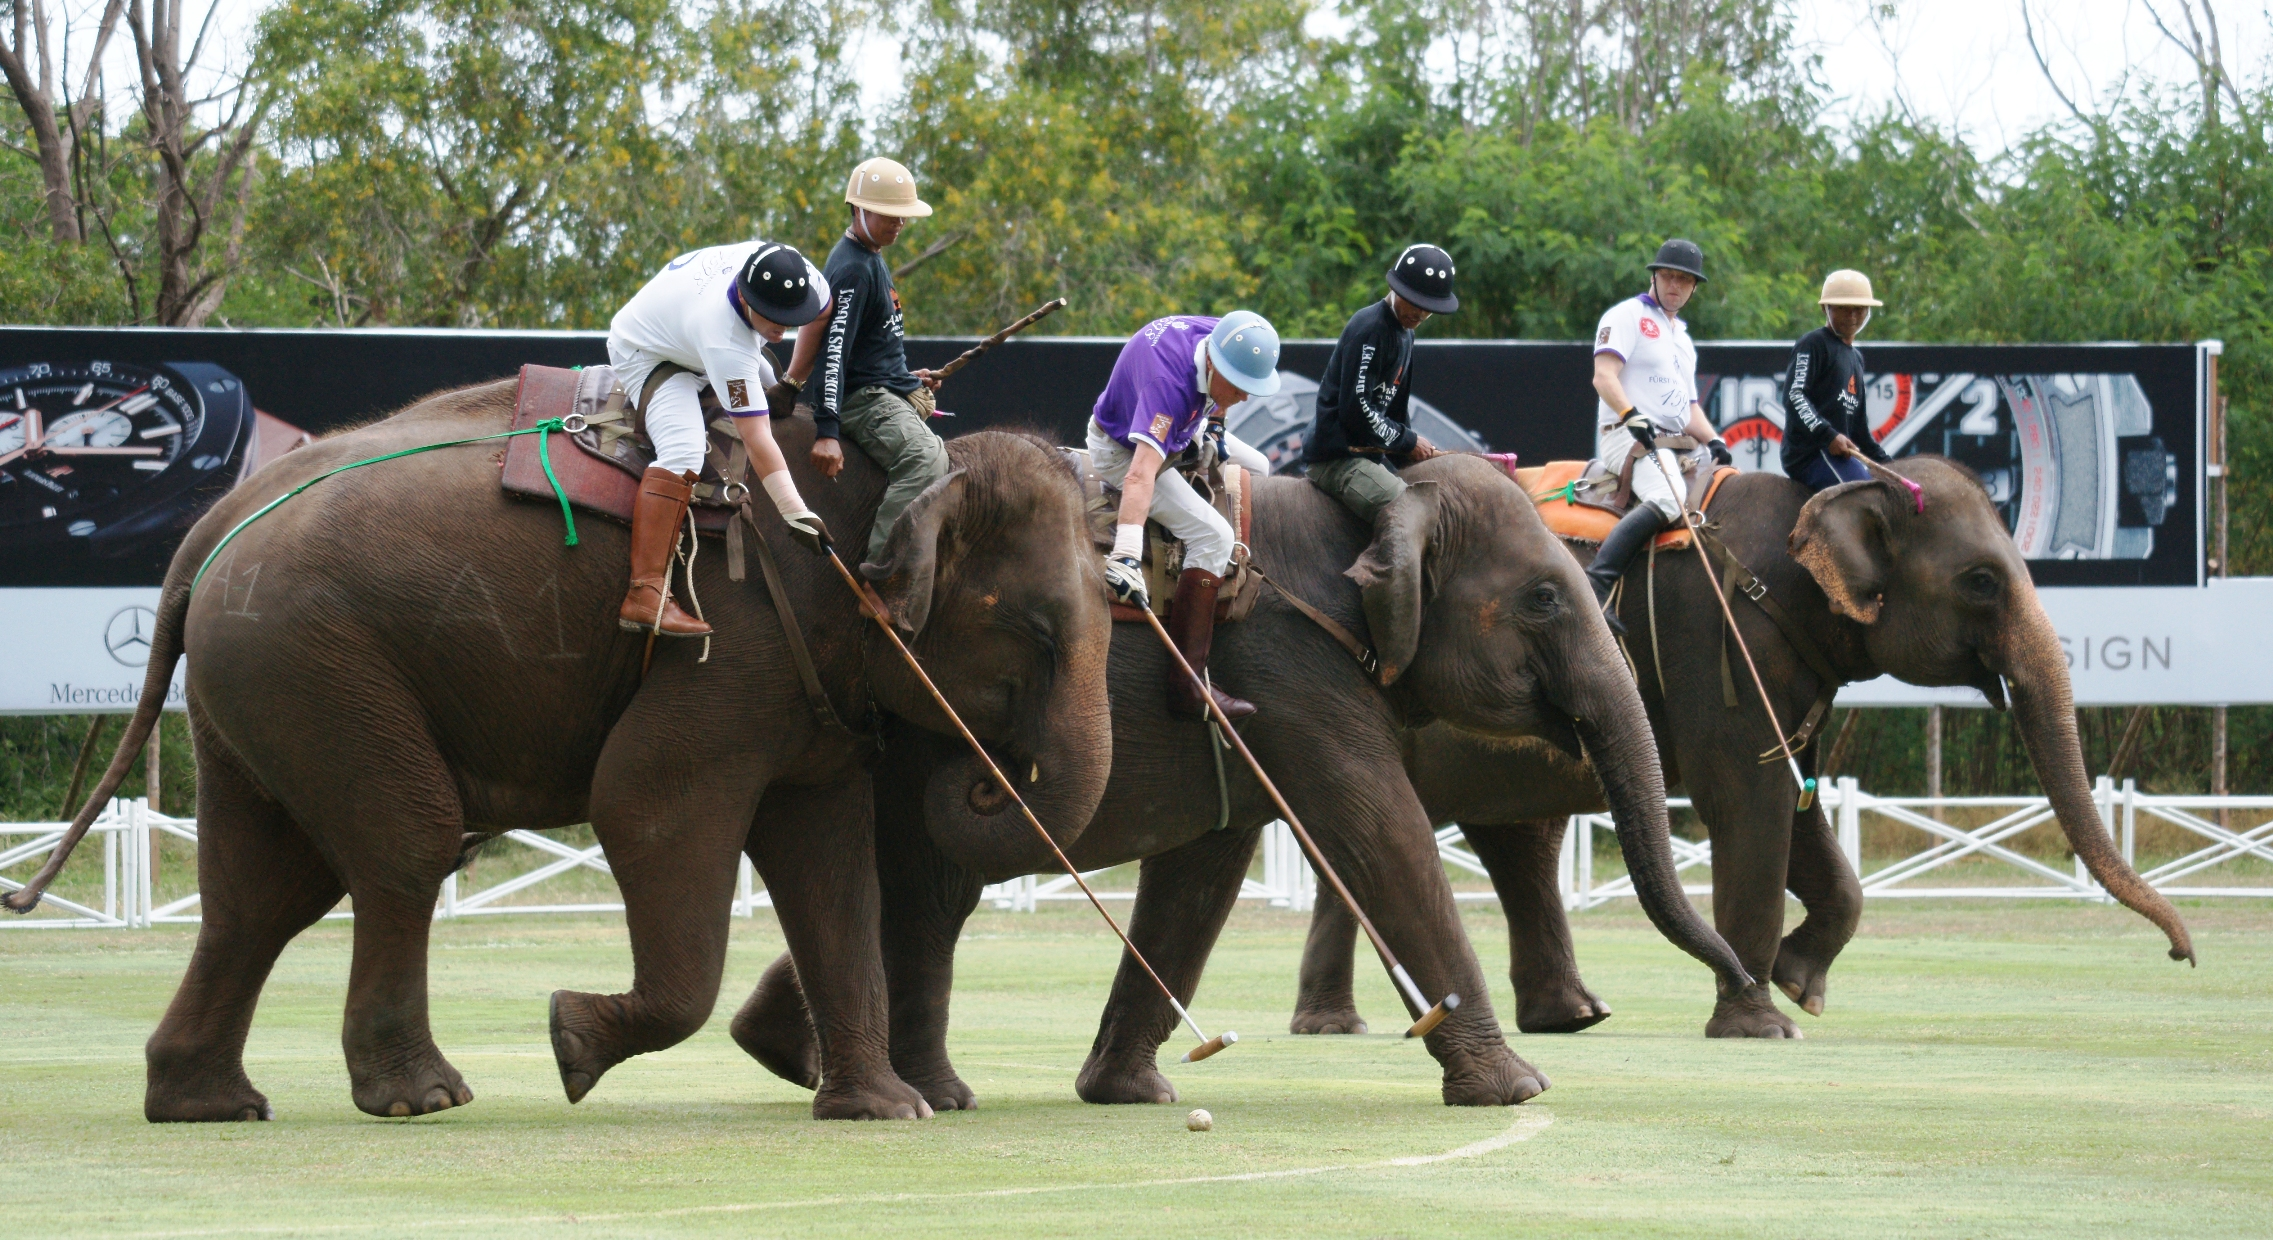 Elephant polo in thailand learn thai with mod elephant polo the biggest weirdest slowest and most expensive game in thailand buycottarizona